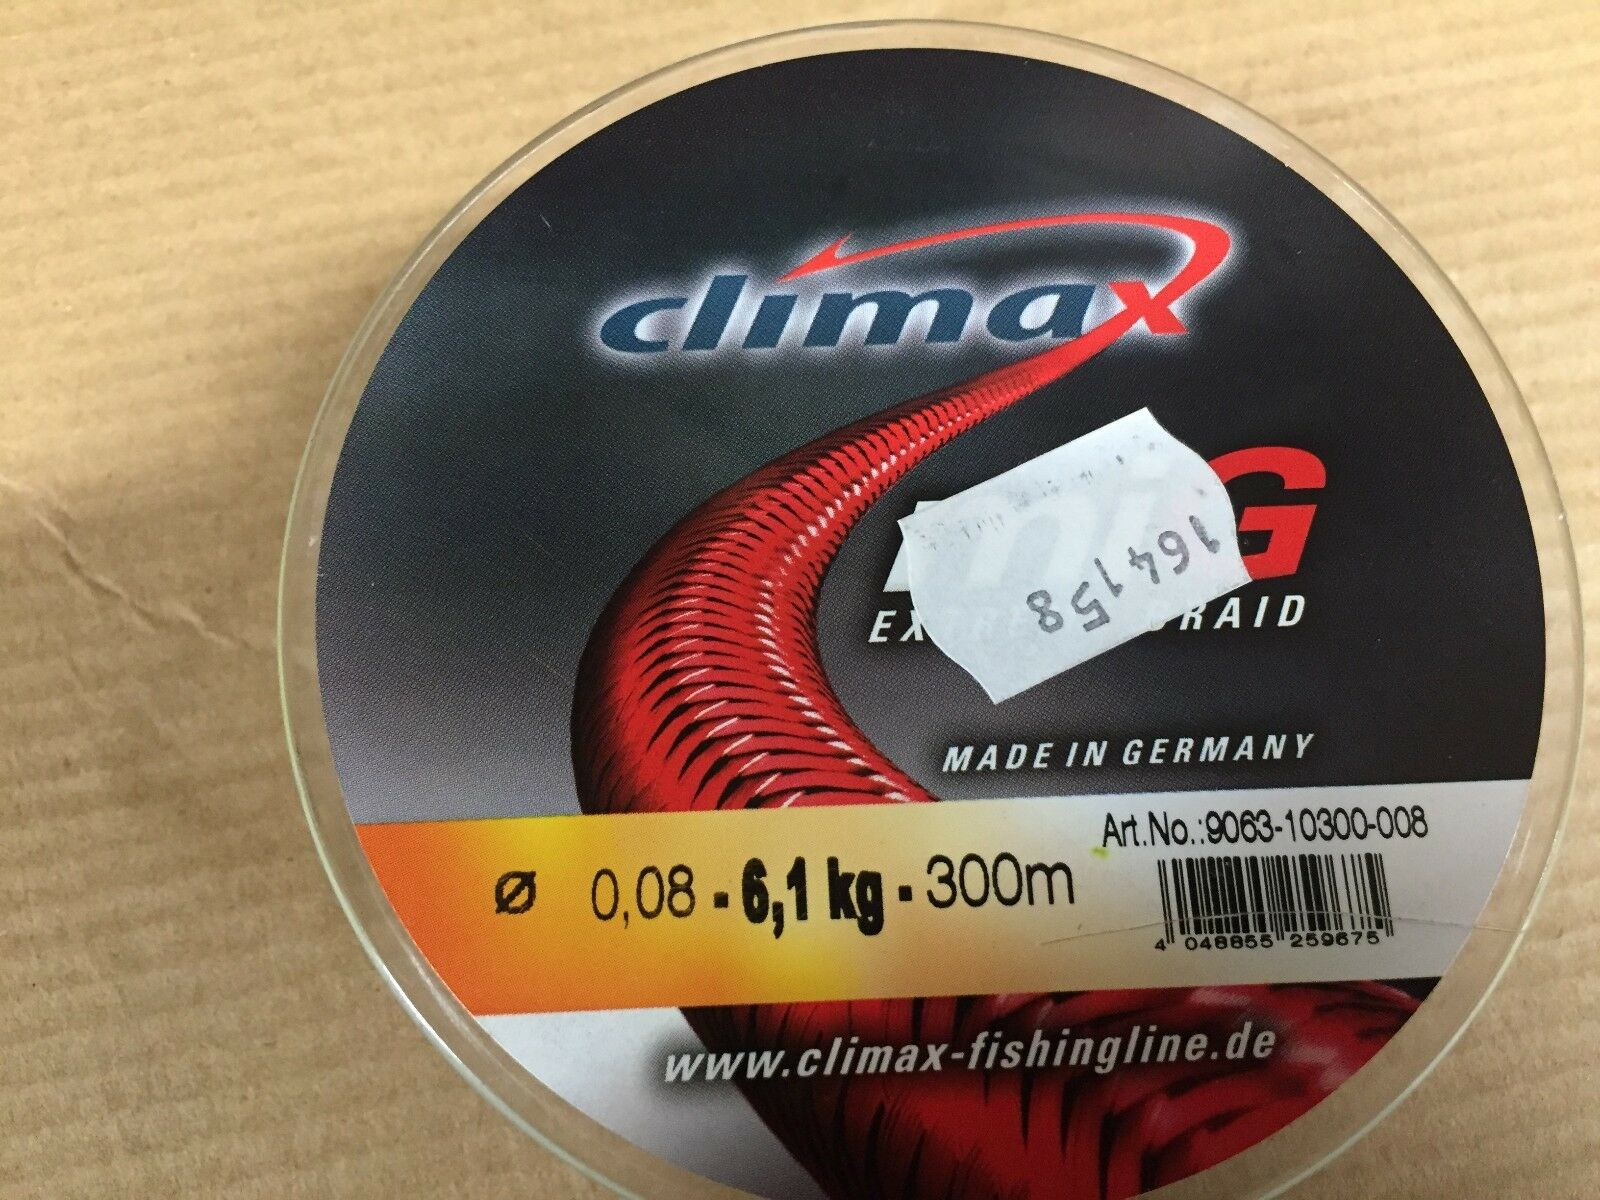 Climax miG extreme Braid 0.08mm 6.1Kg 300m 164158 made in Germany fishing line